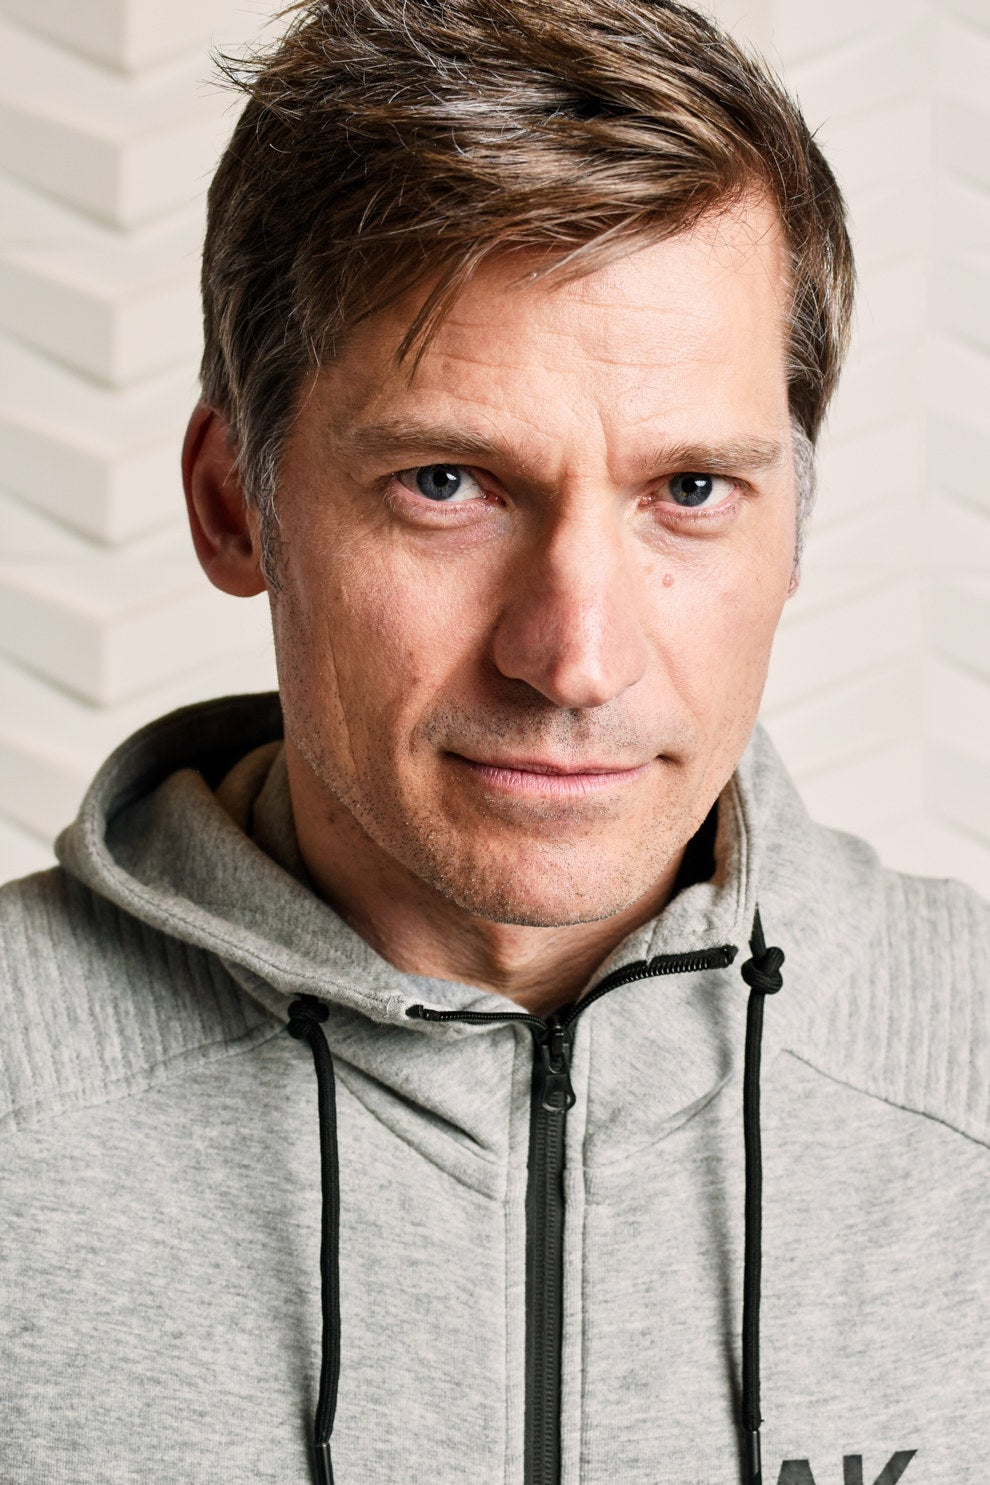 Small Crimes star Nikolaj Coster-Waldau